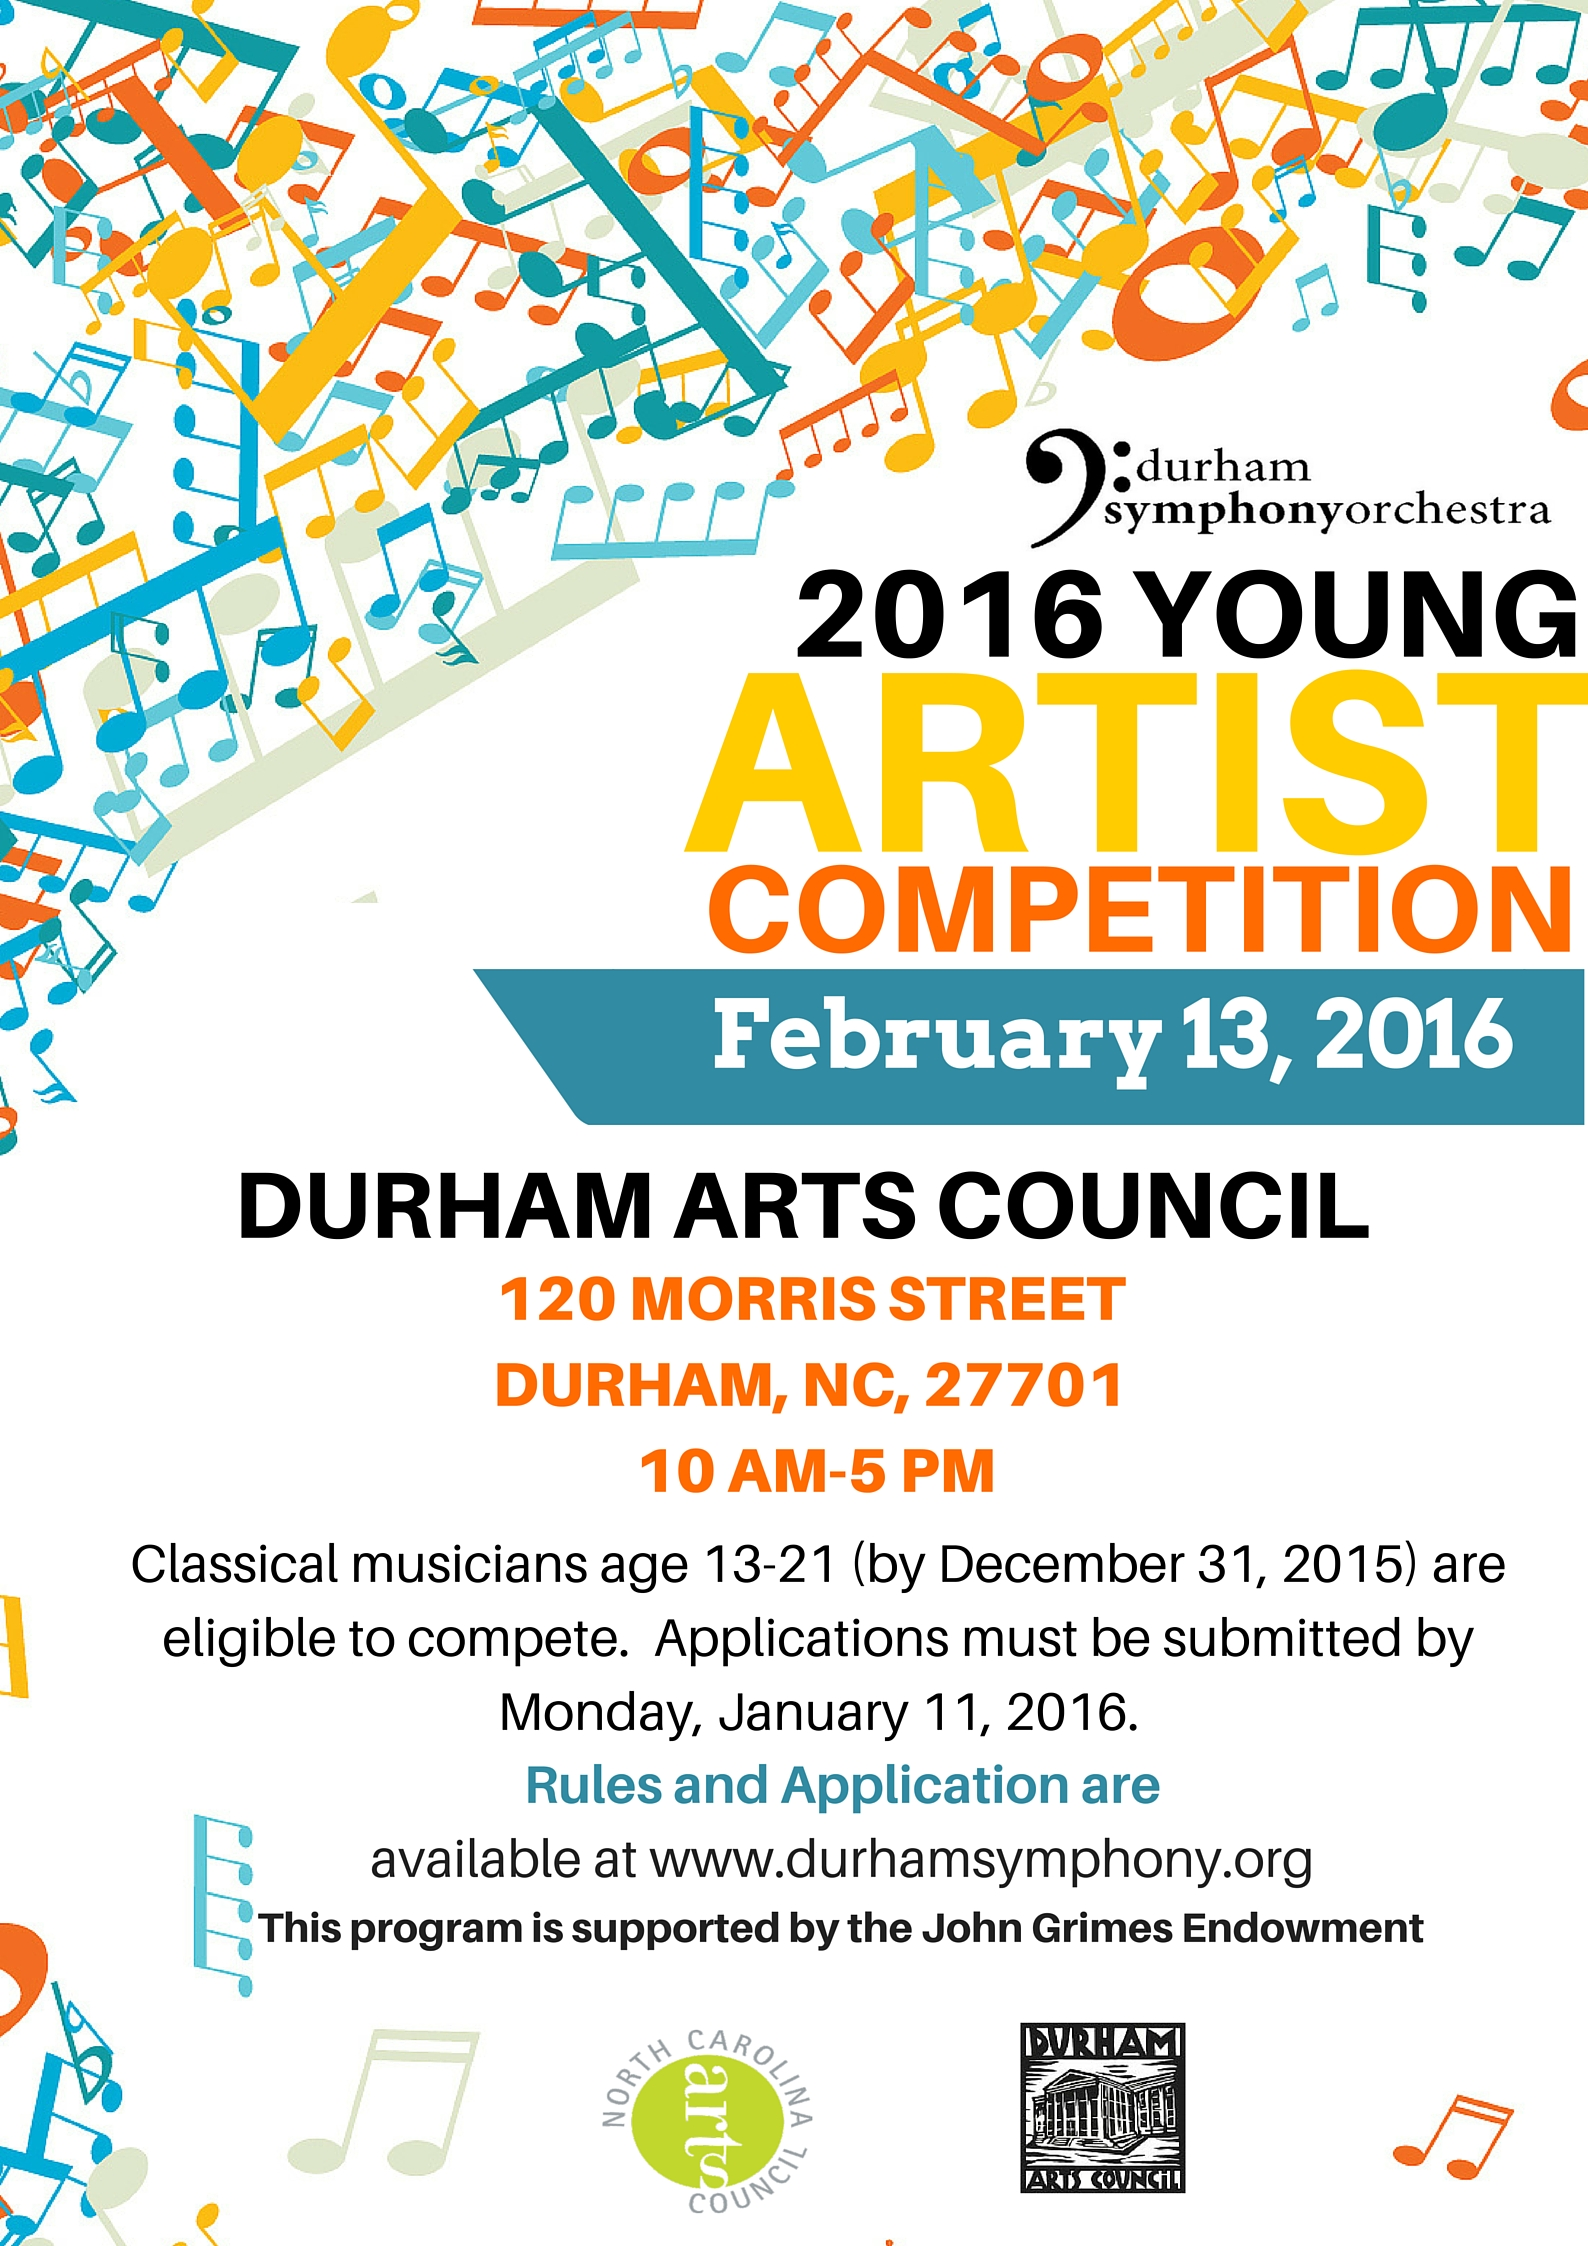 DSO 2016 Young Artist Competition